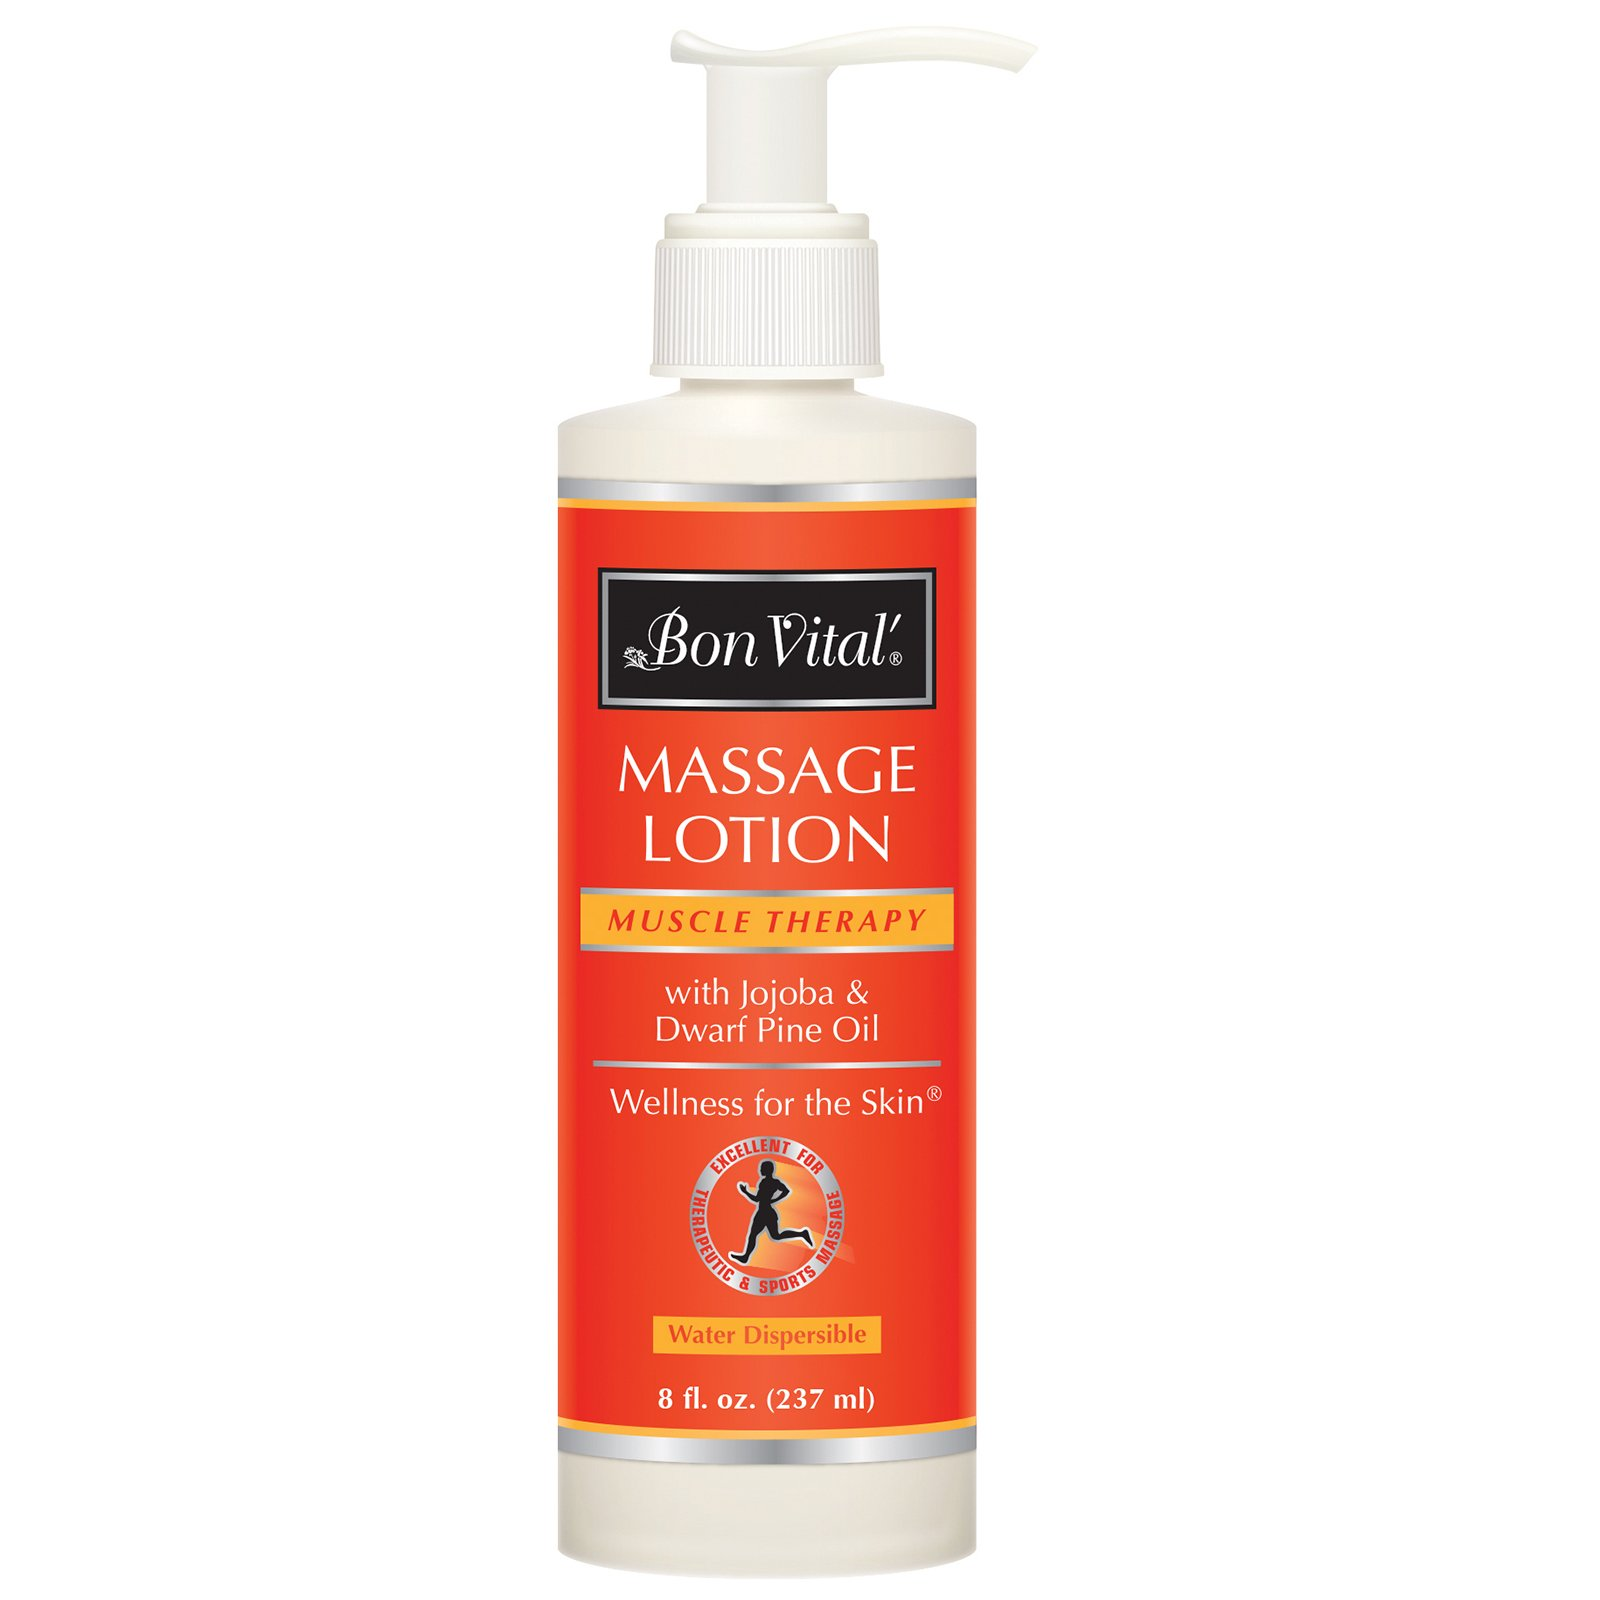 Bon Vital' Muscle Therapy Massage Lotion Made with Dwarf Pine Oil and Essential Oils for a Relaxing Massage and Sore Muscle Relief, Aids in Muscle Recovery Through IASTM and Graston, 8 Oz Pump Bottle